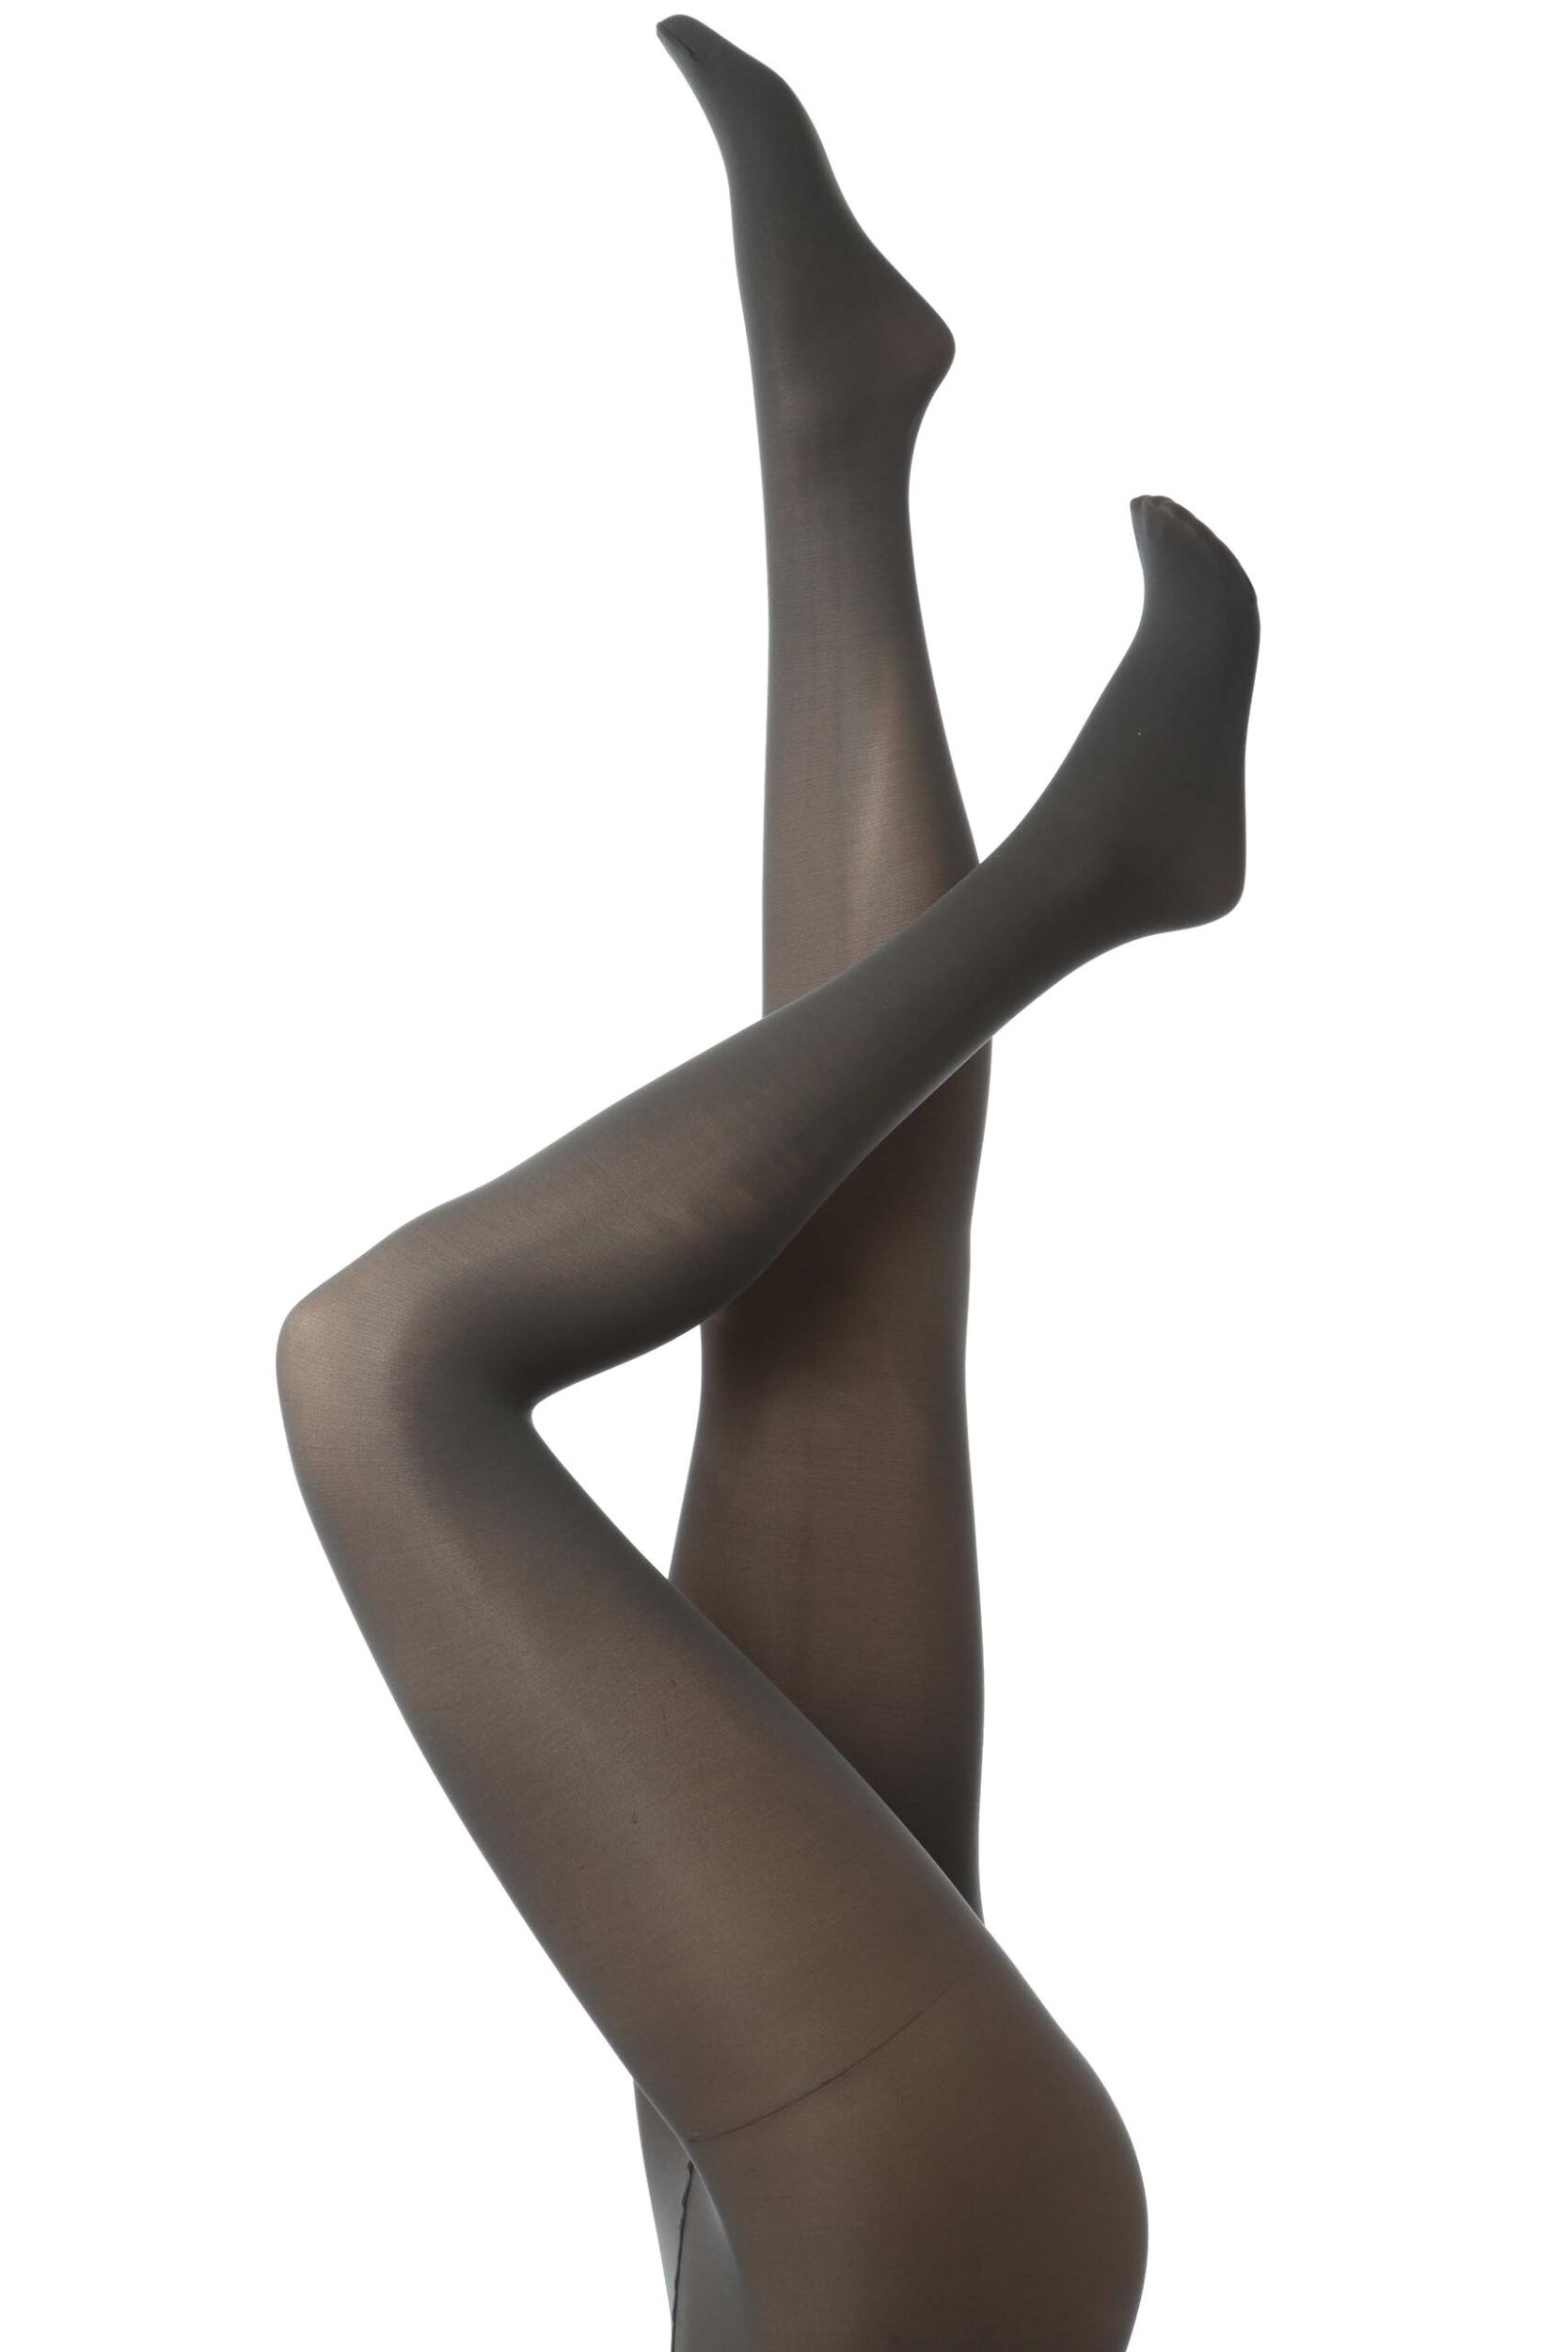 1 Pair Charnos 30 Denier Semi Opaque Tights